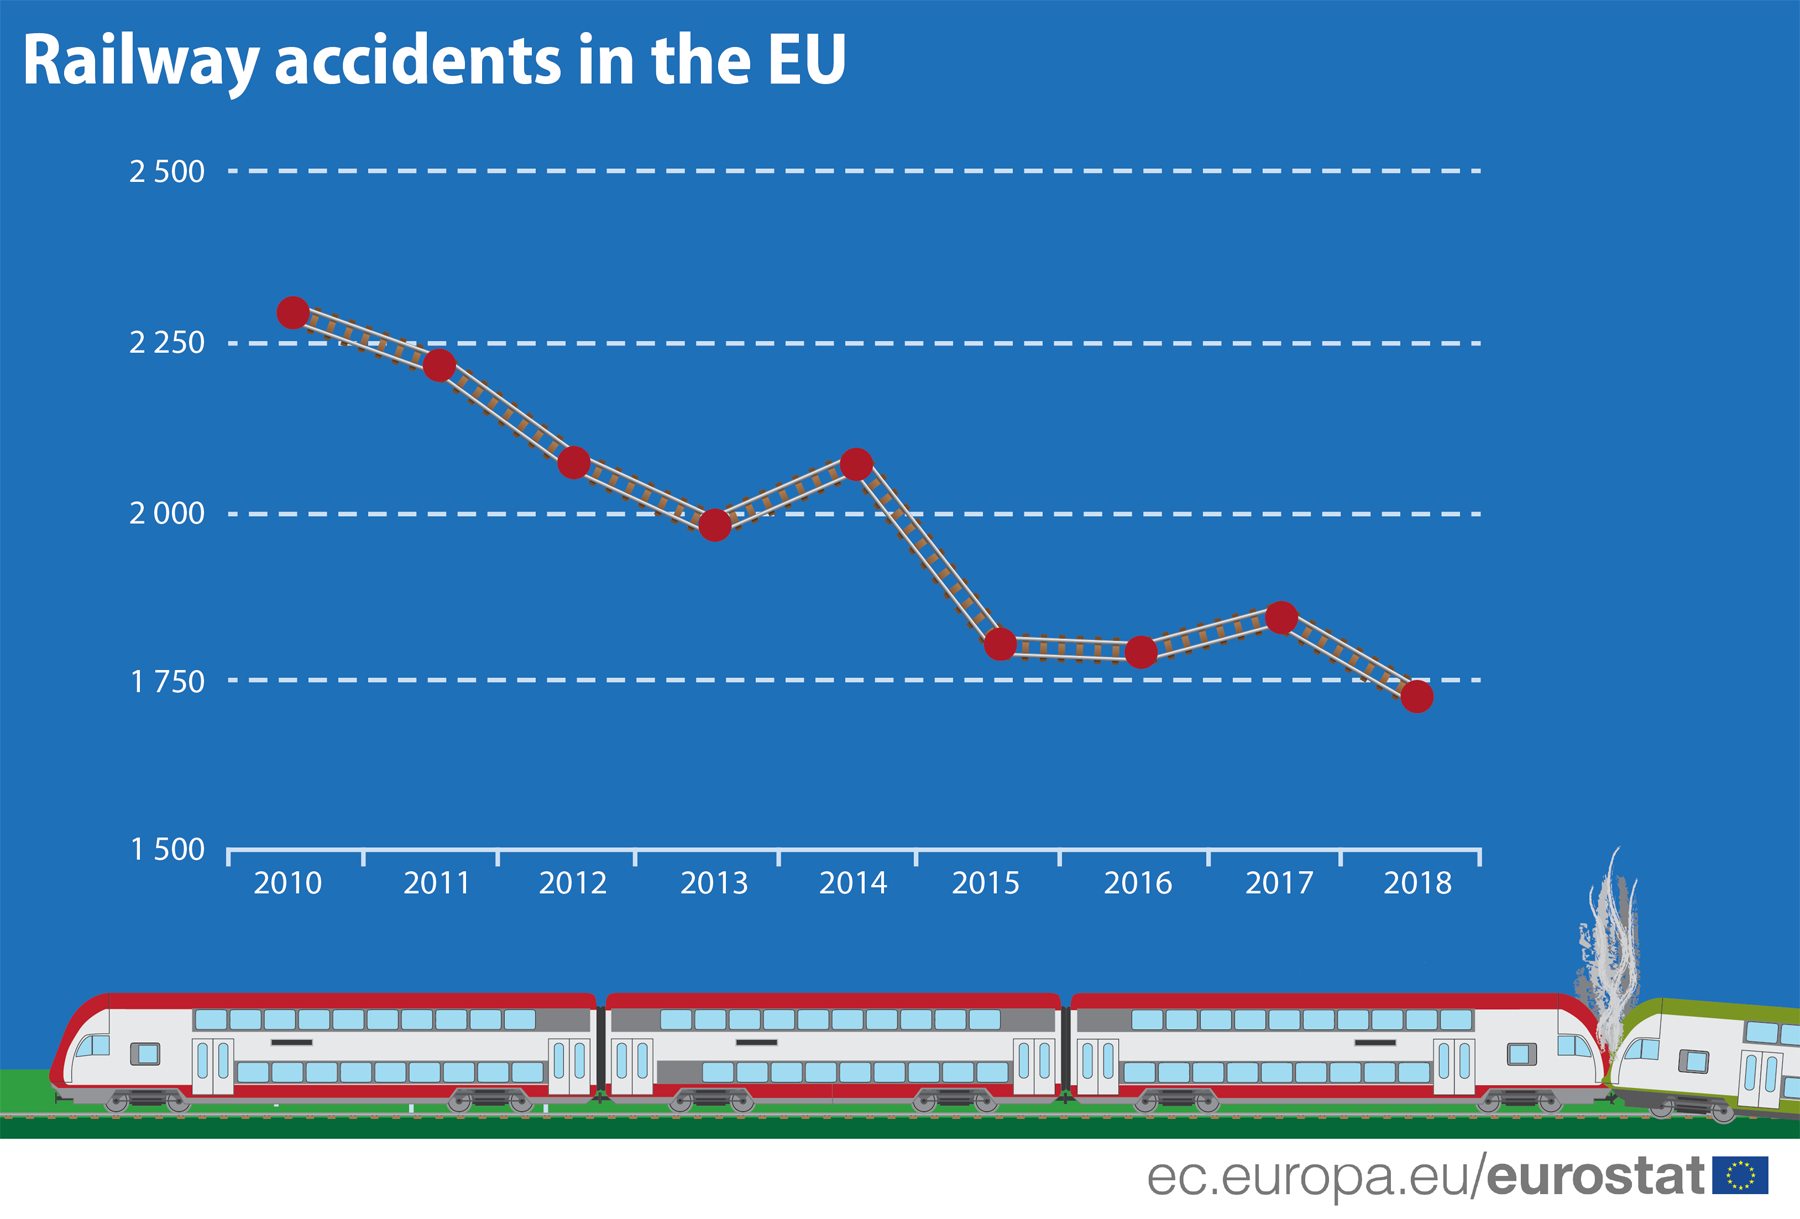 Line chart: Number of significant railway accidents in the European Union